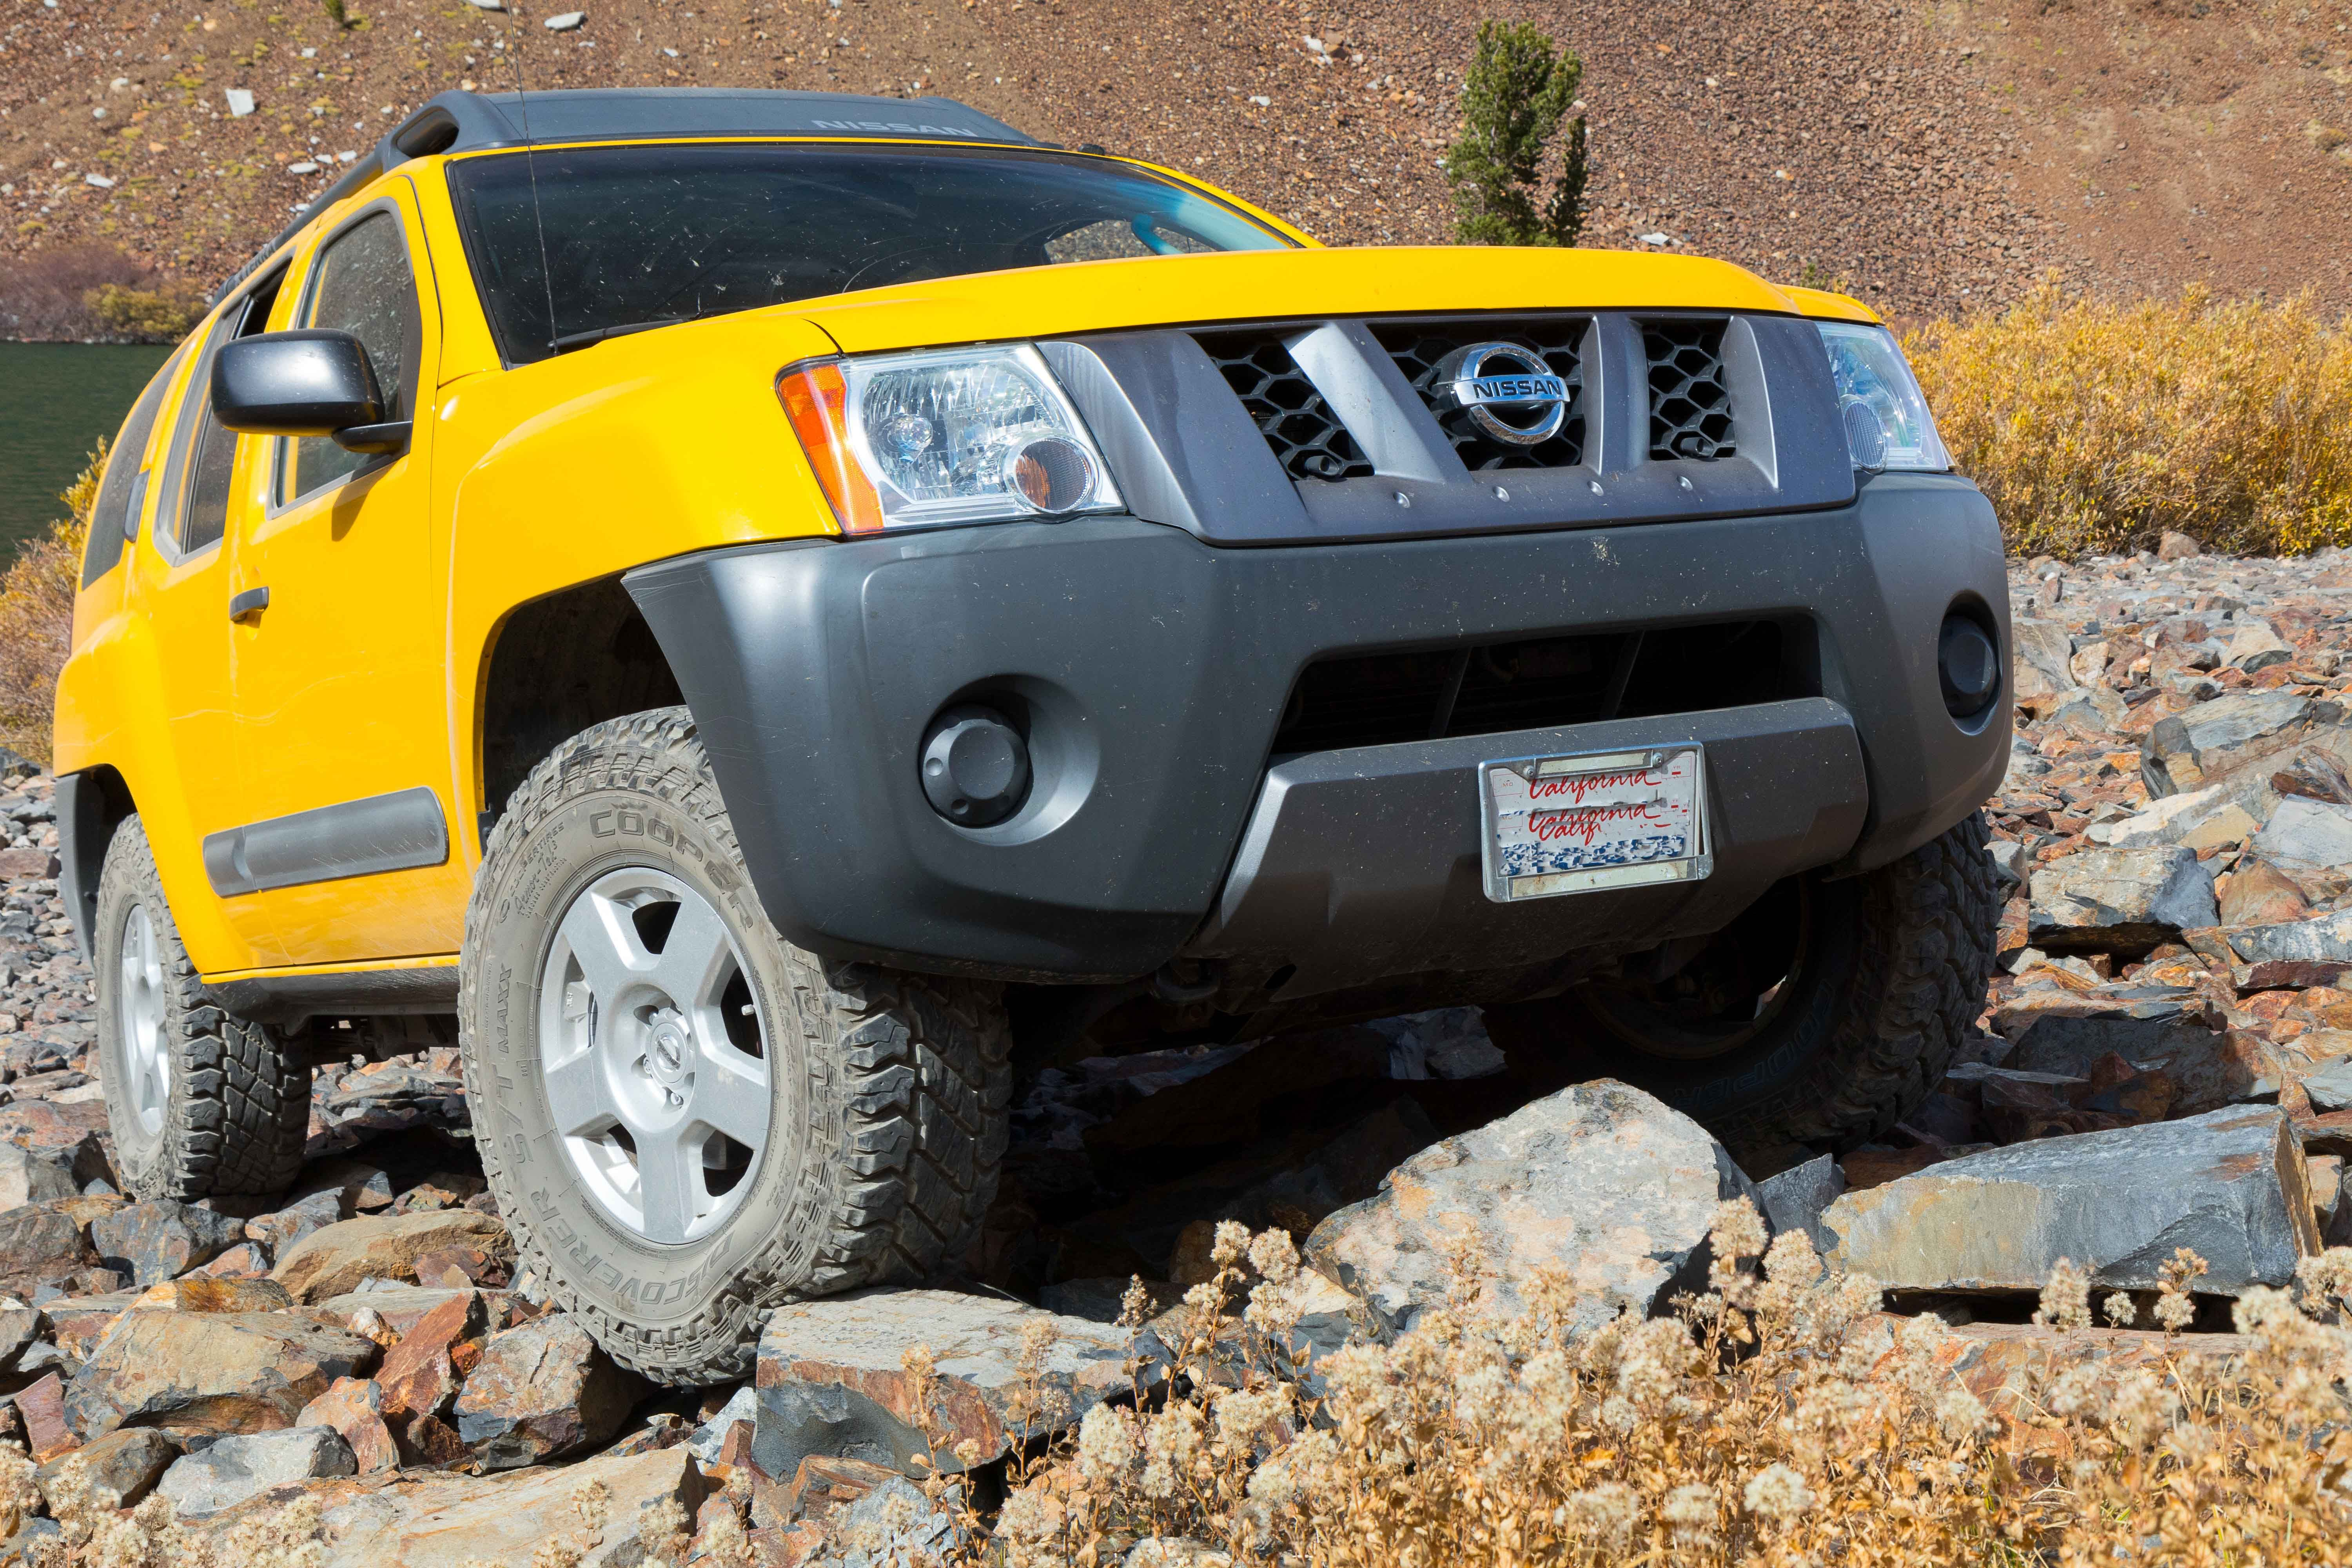 2006 nissan xterra yellow cooper st maxx tires at 15 psi off 2006 nissan xterra yellow cooper st maxx tires at 15 psi off roading pinterest nissan xterra vanachro Images